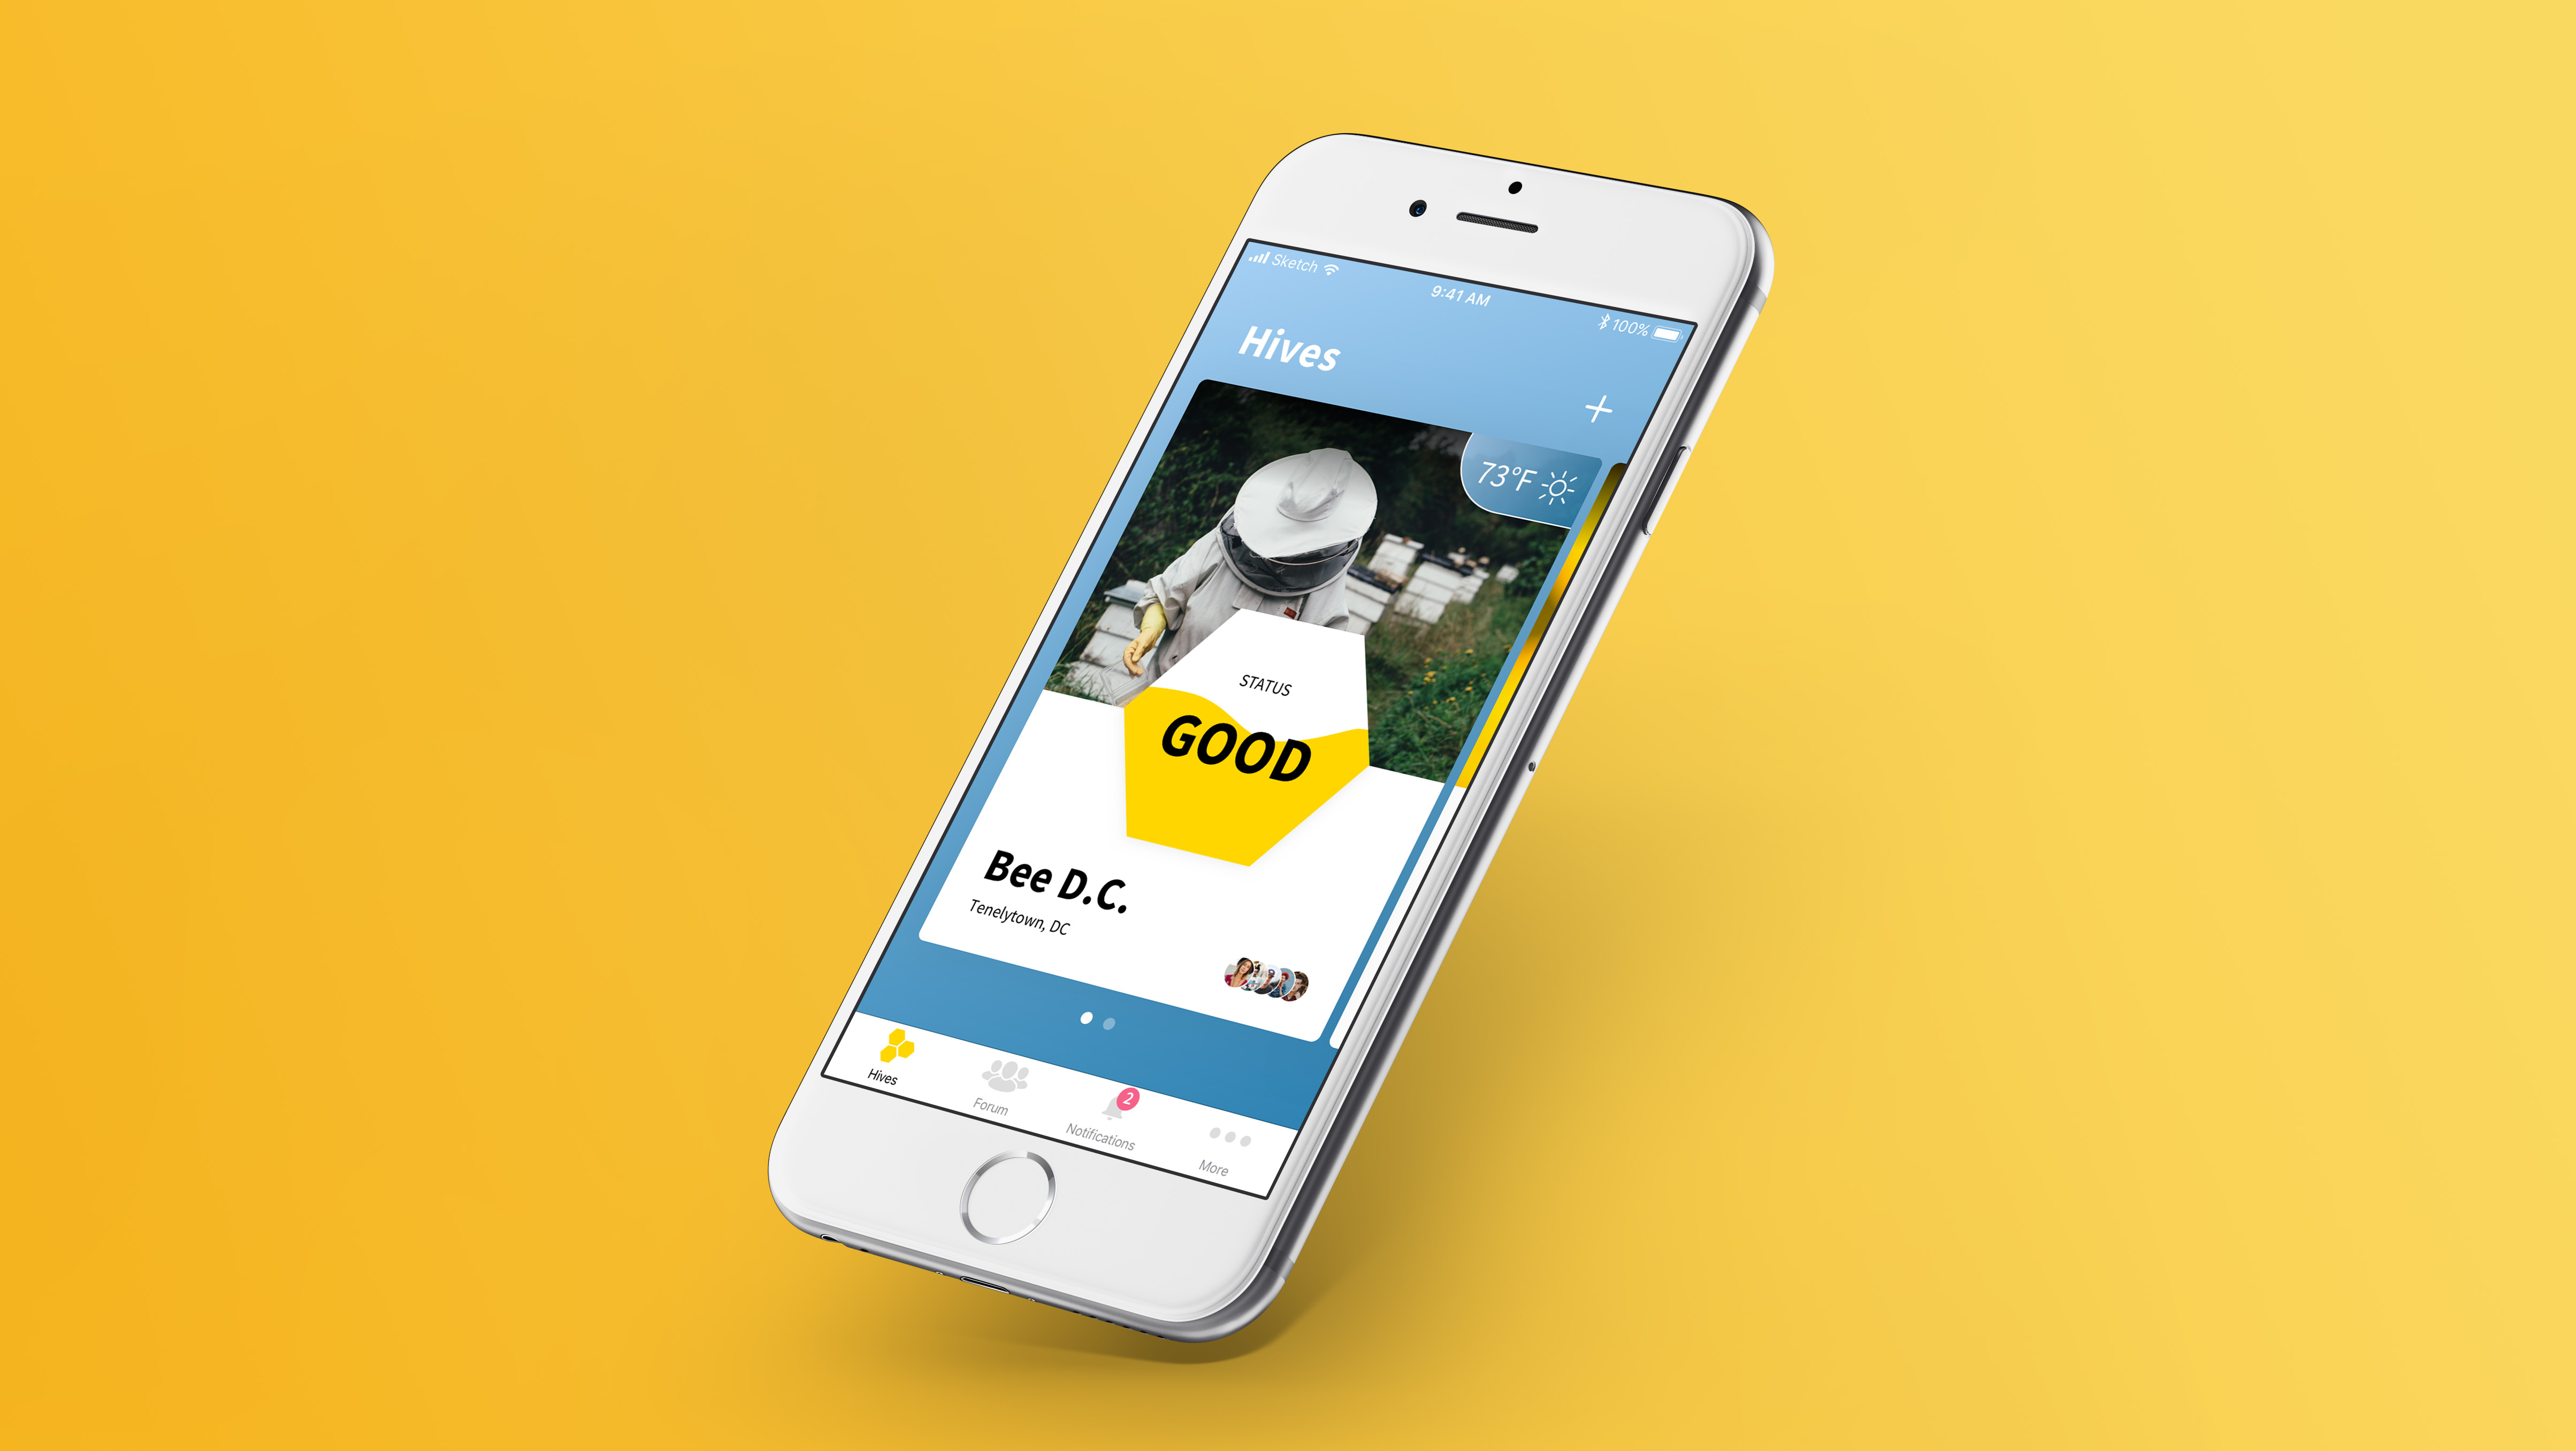 BeeOne App in iPhone with Yellow Background